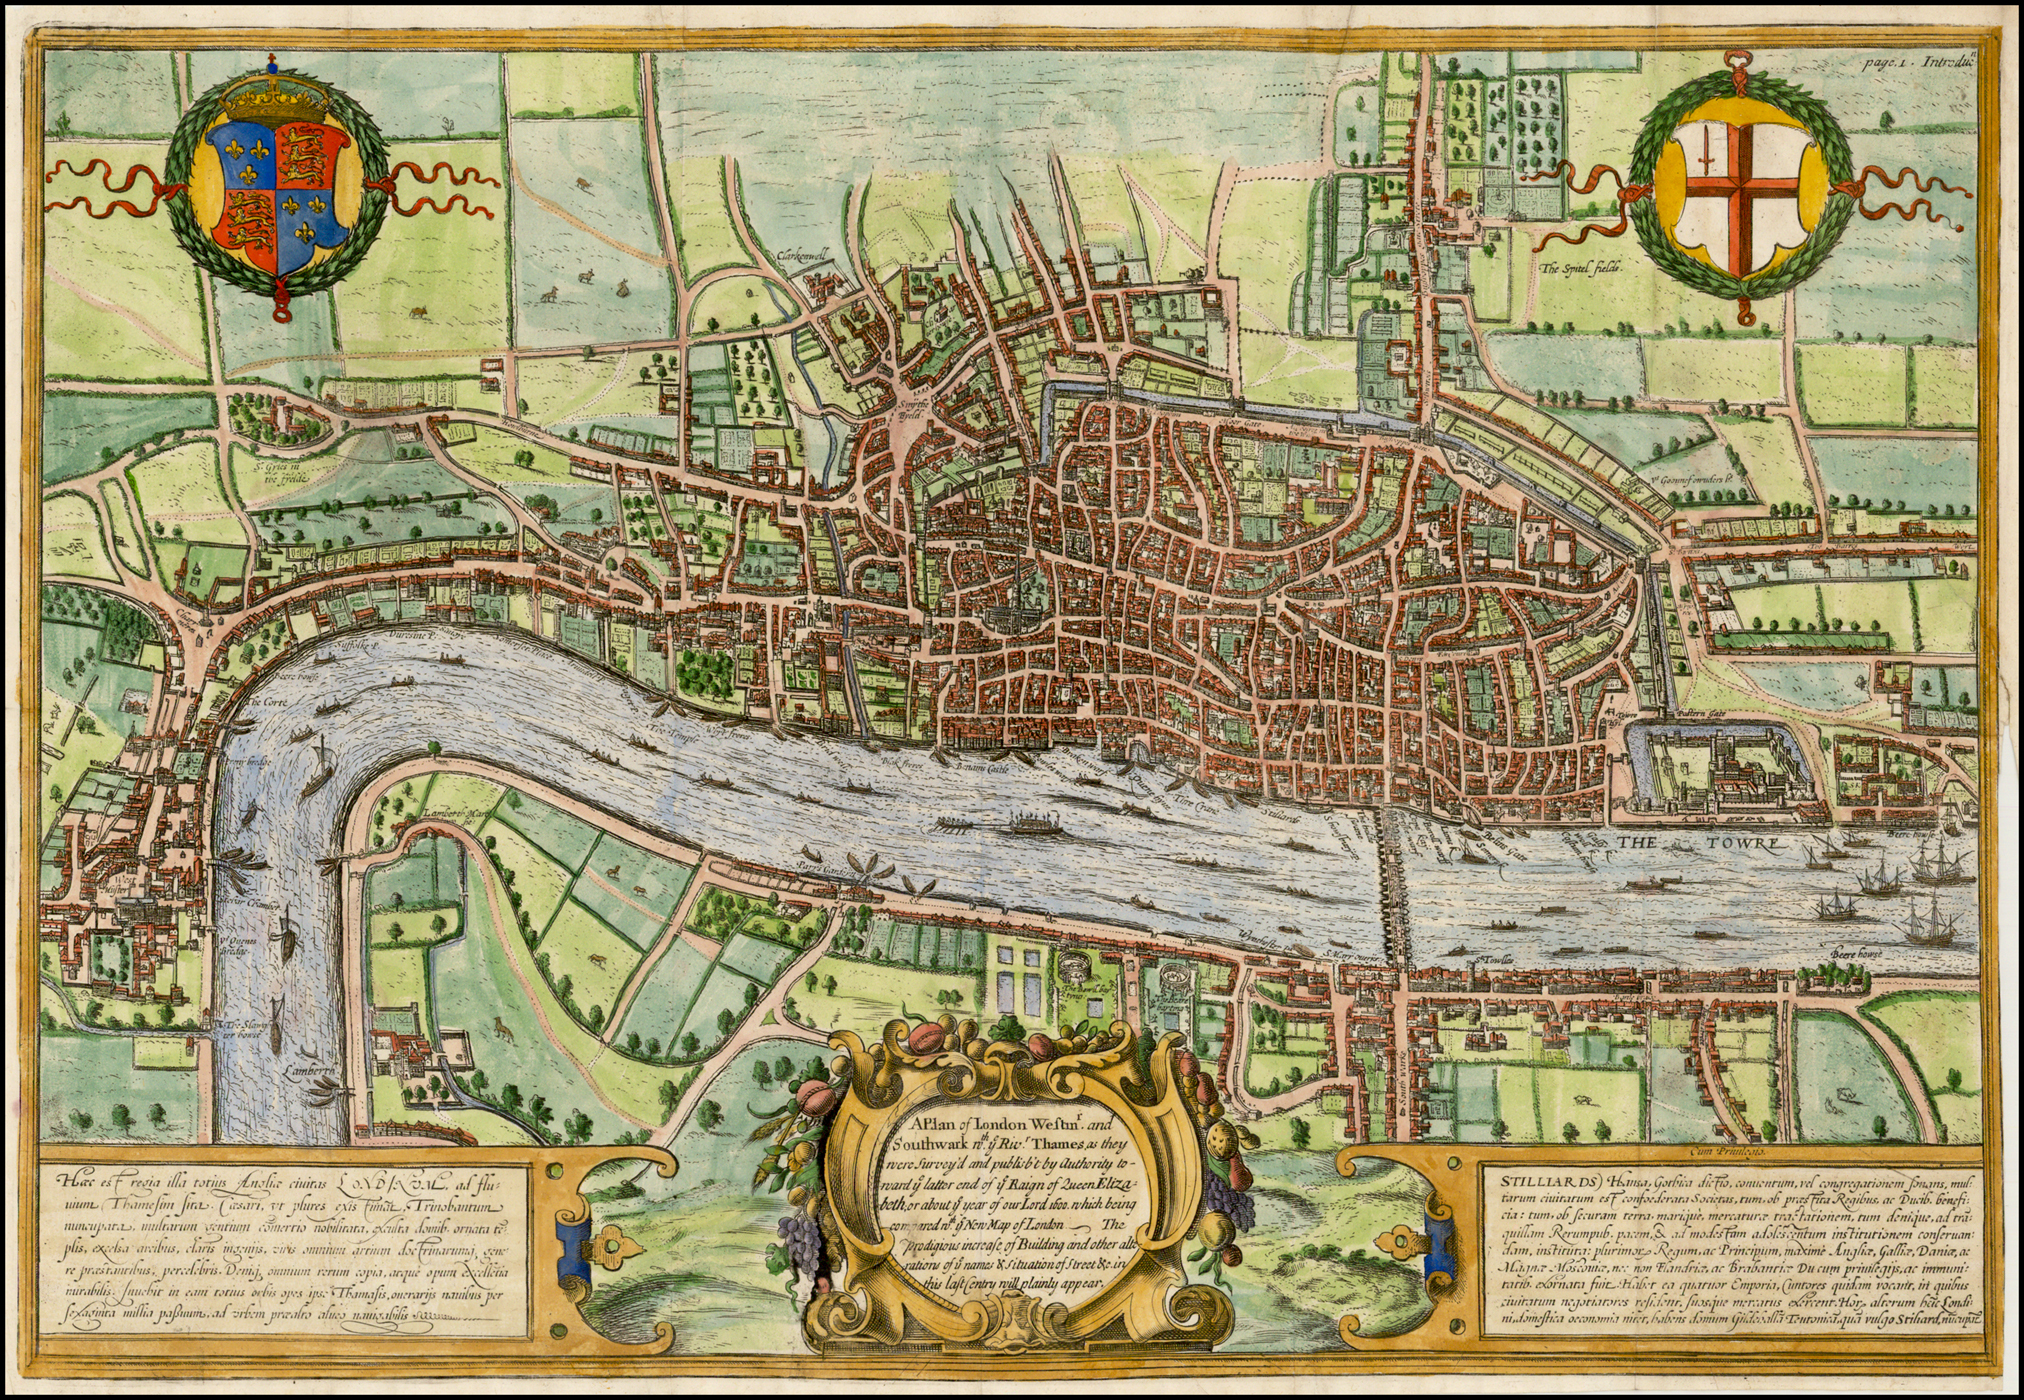 London 1600 Map.A Plan Of London Westmr And Southwark Wth Ye Rivr Thames As They